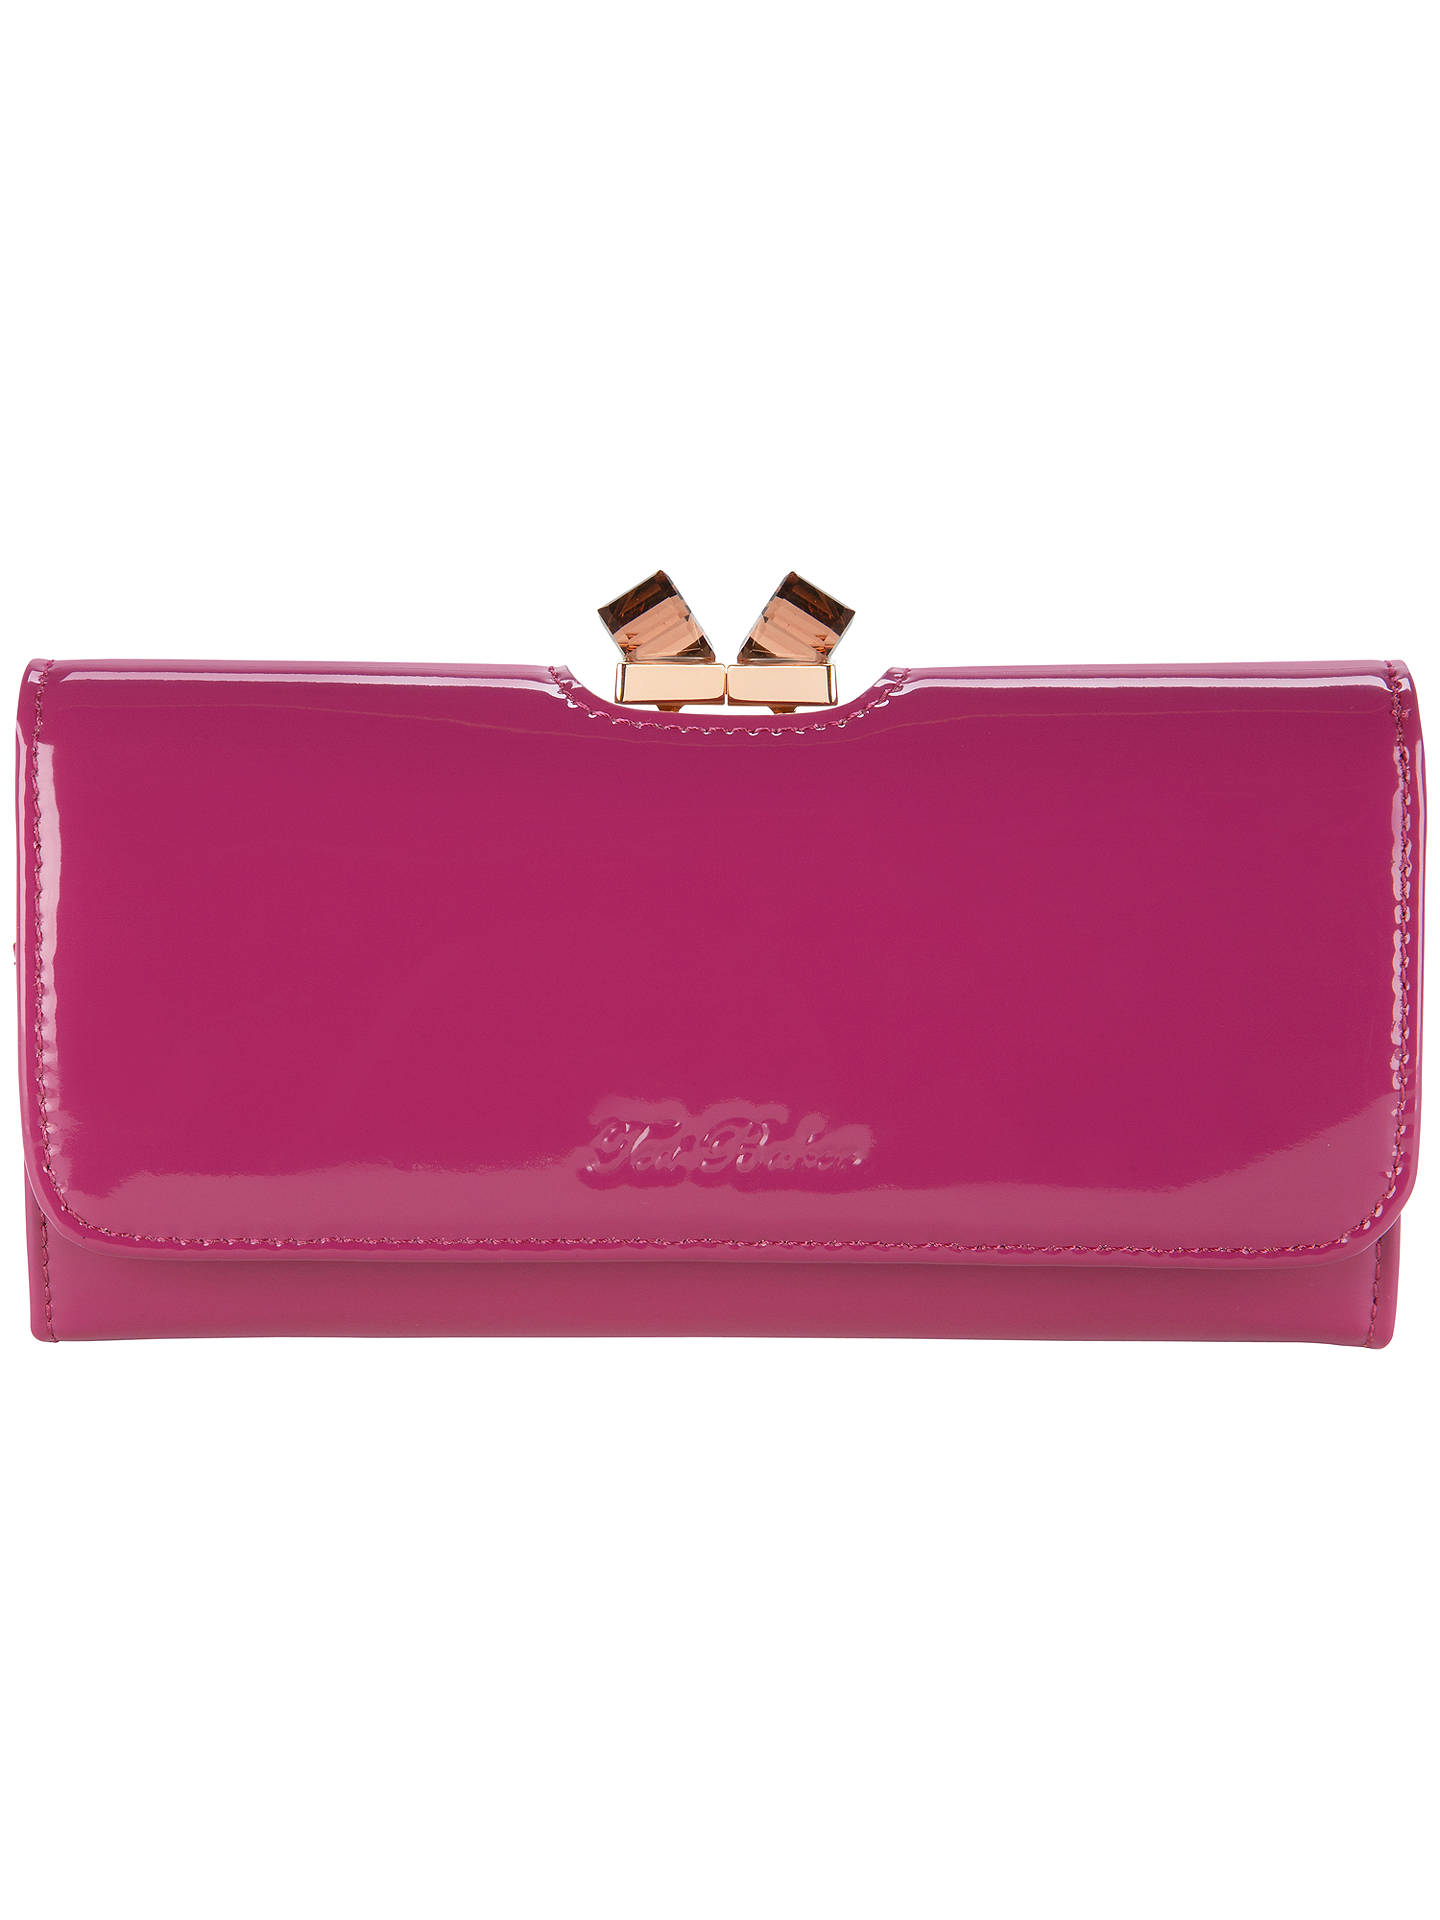 9ae57bf63742 Buy Ted Baker Missti Patent Leather Crystal Matinee Purse